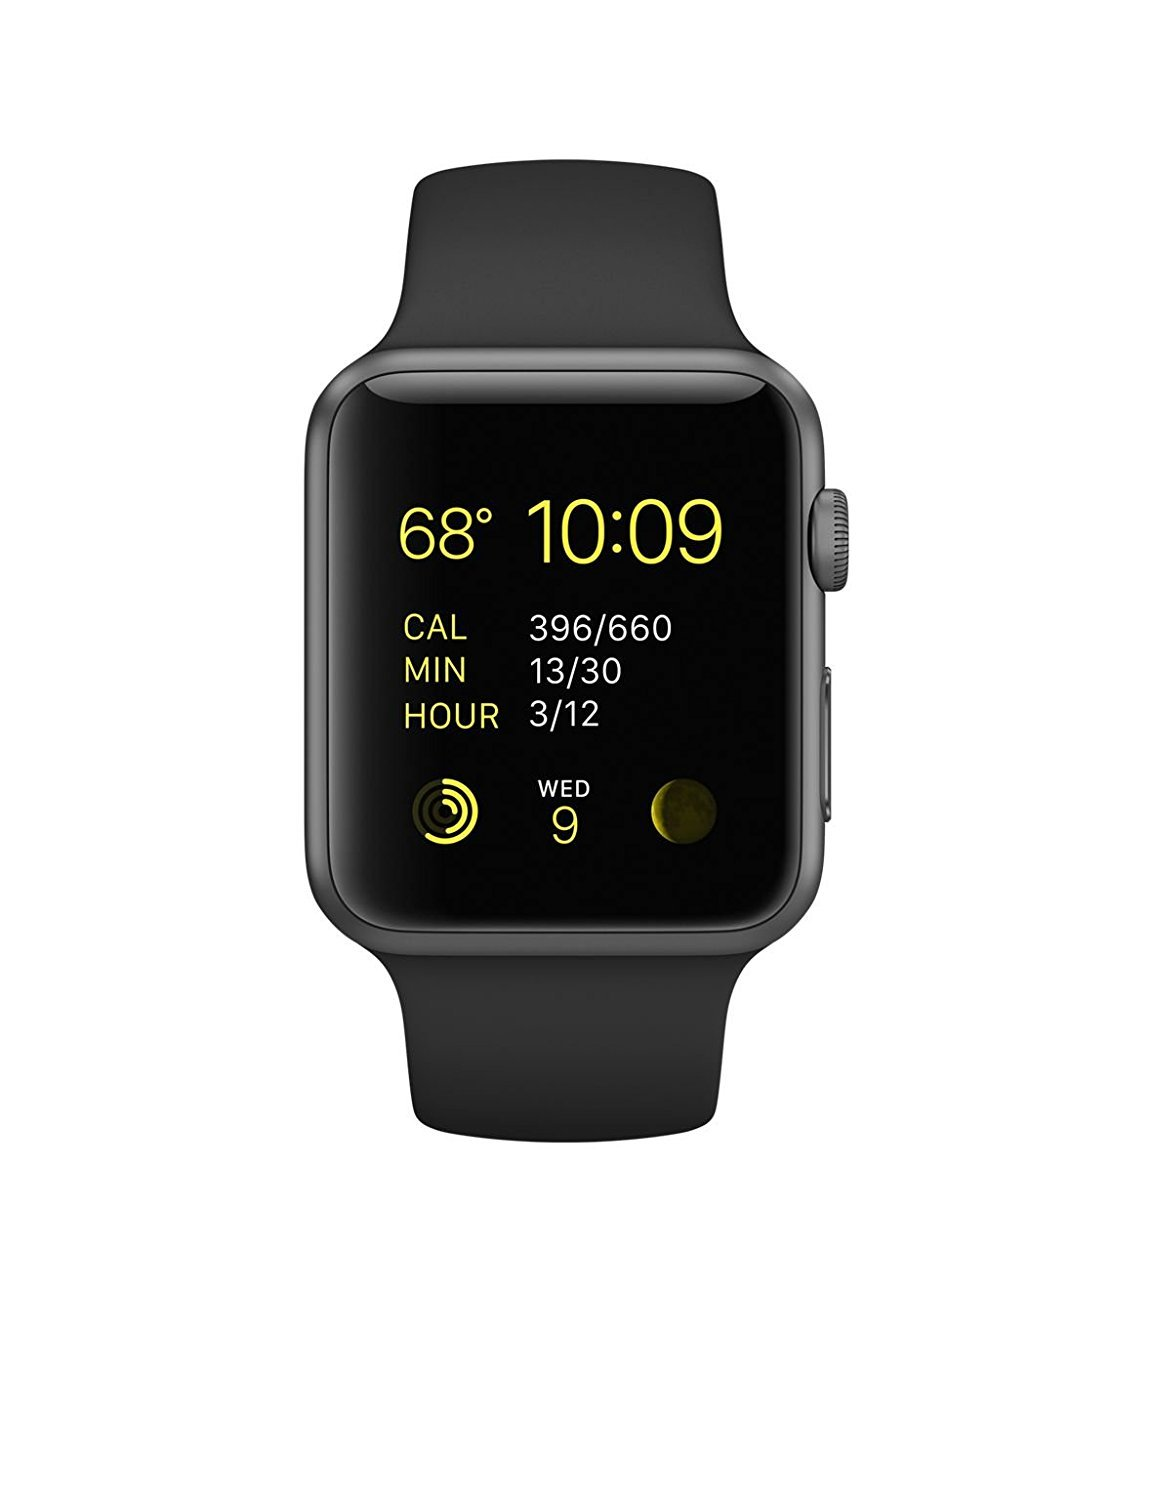 Like New Watch Series 1 42MM Space Gray Aluminum Case Black Sport Band